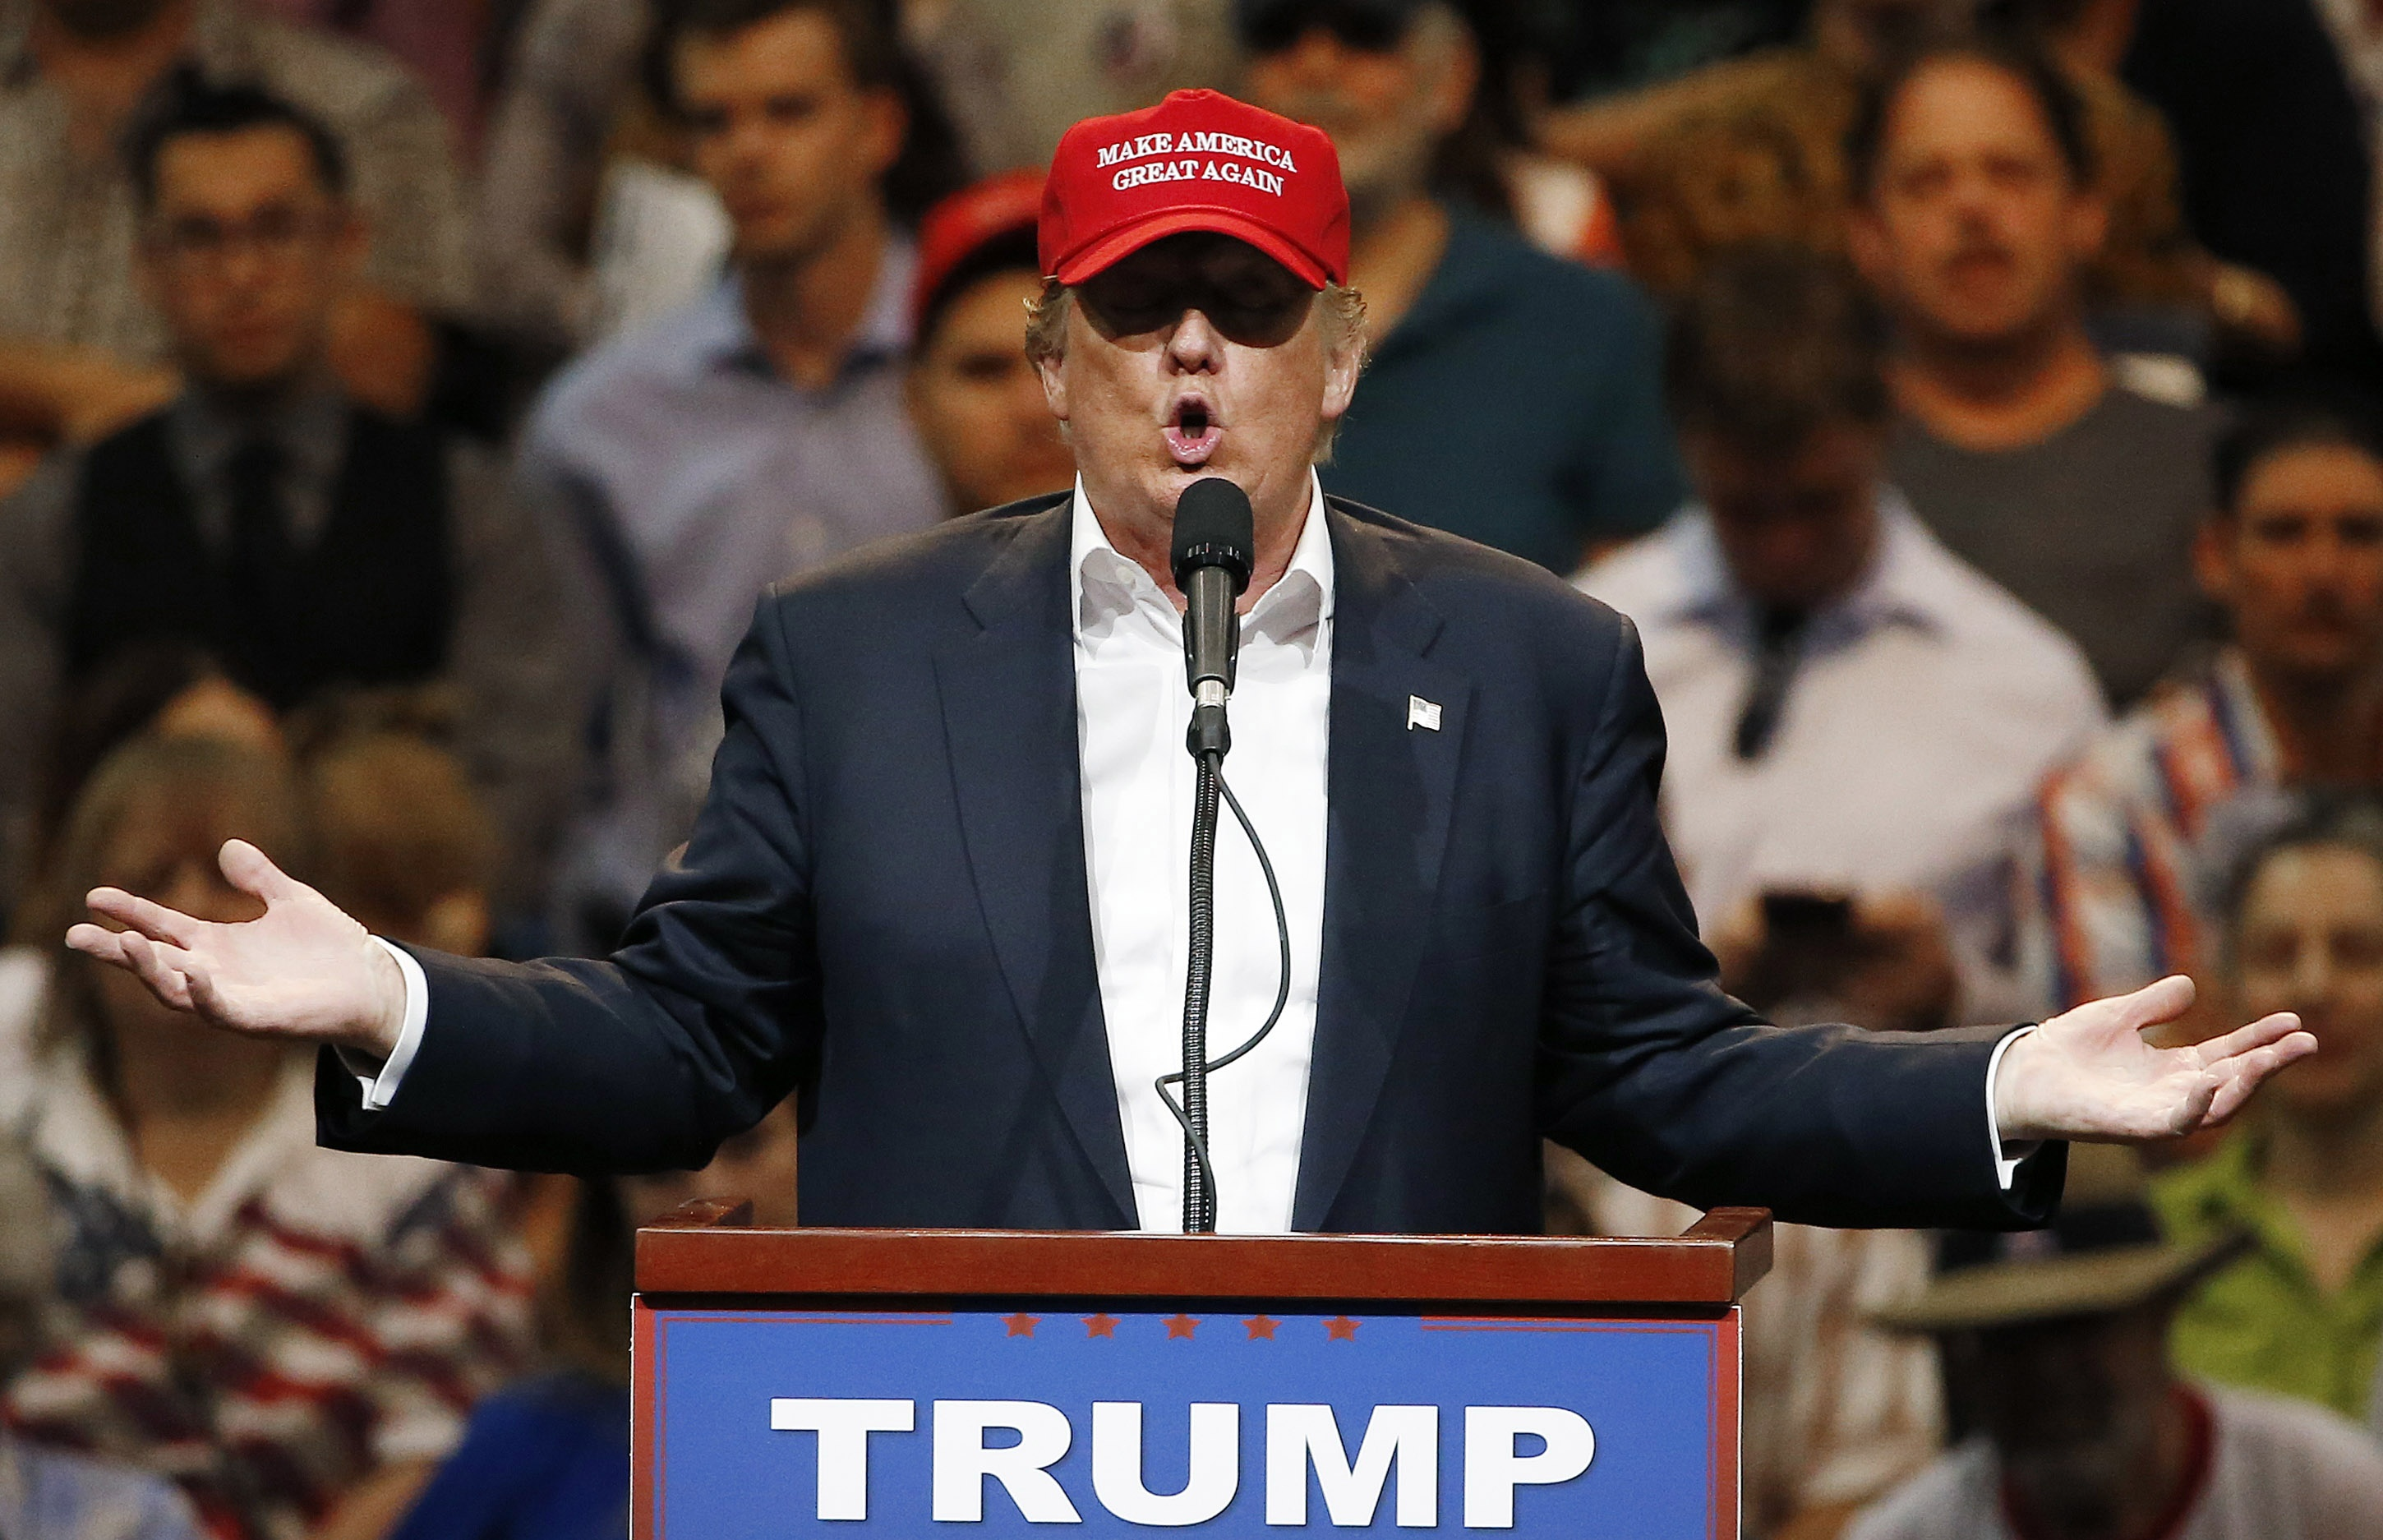 Photo: Republican presidential candidate Donald Trump in Arizona March 2016 (AP Photo)